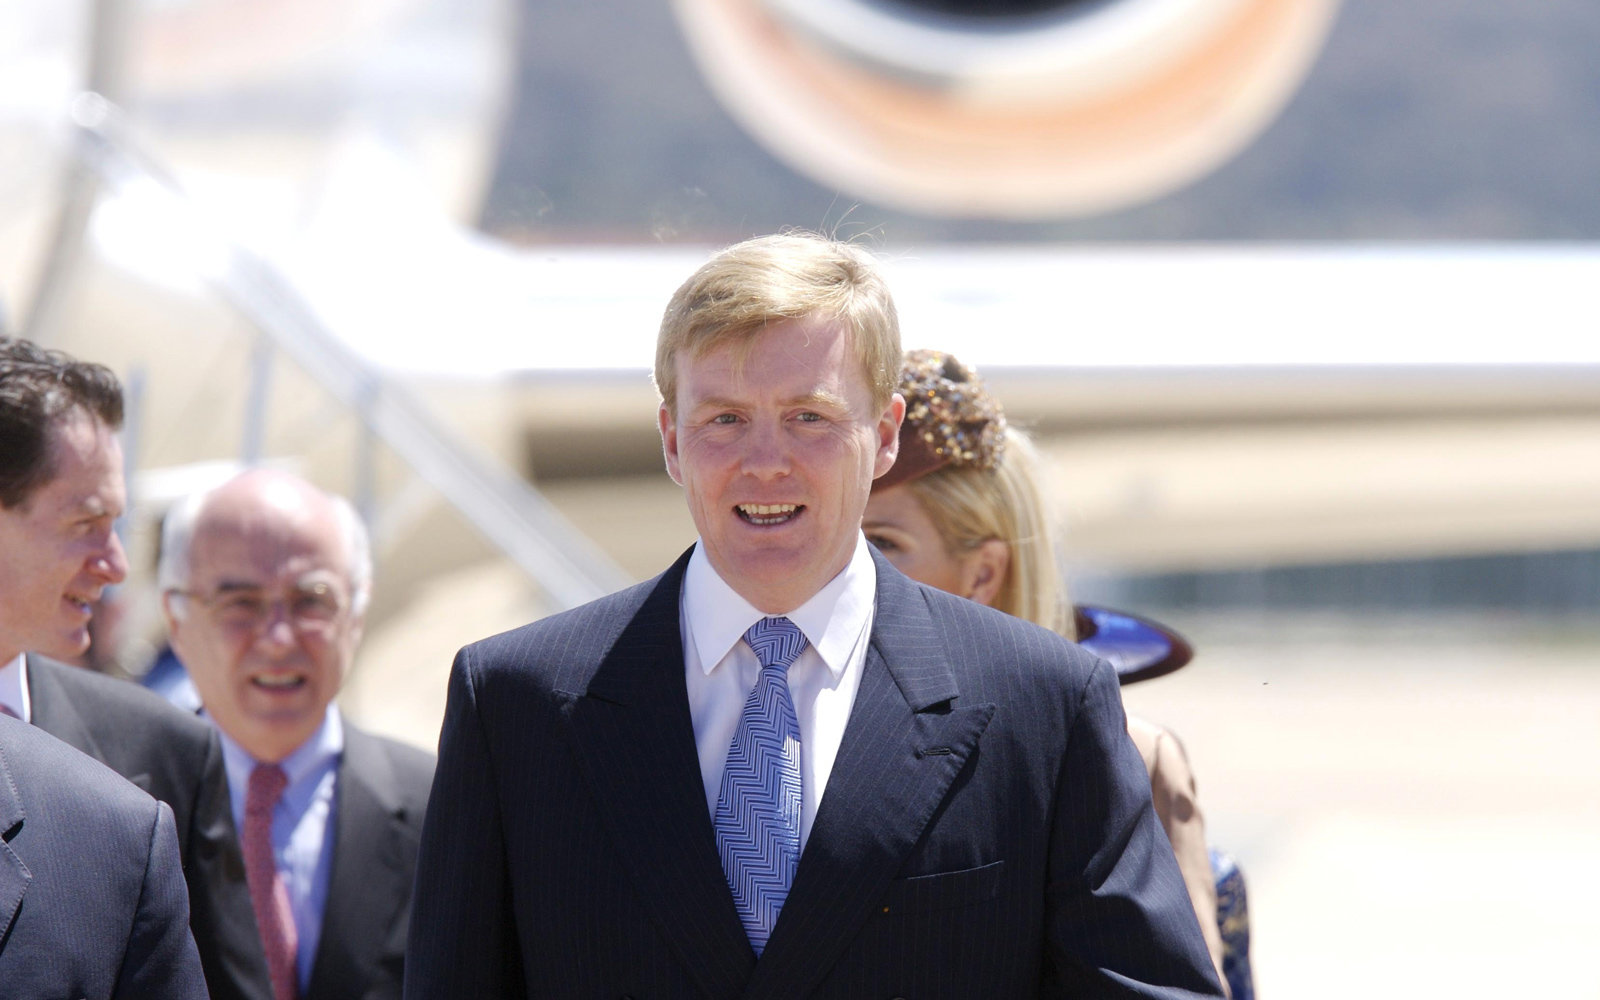 Dutch King Willem-Alexander has been moonlighting as a pilot for the past 21 years.